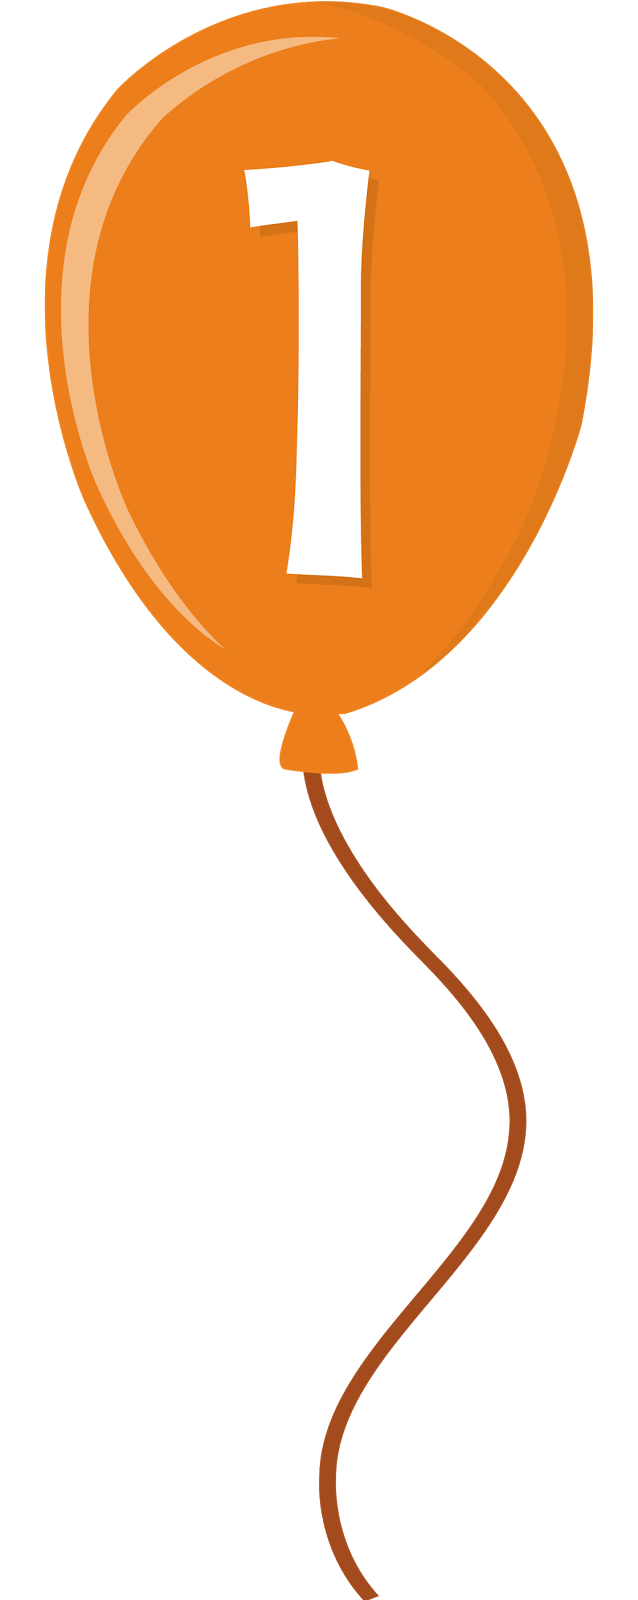 638x1600 Orange Clipart Baloon